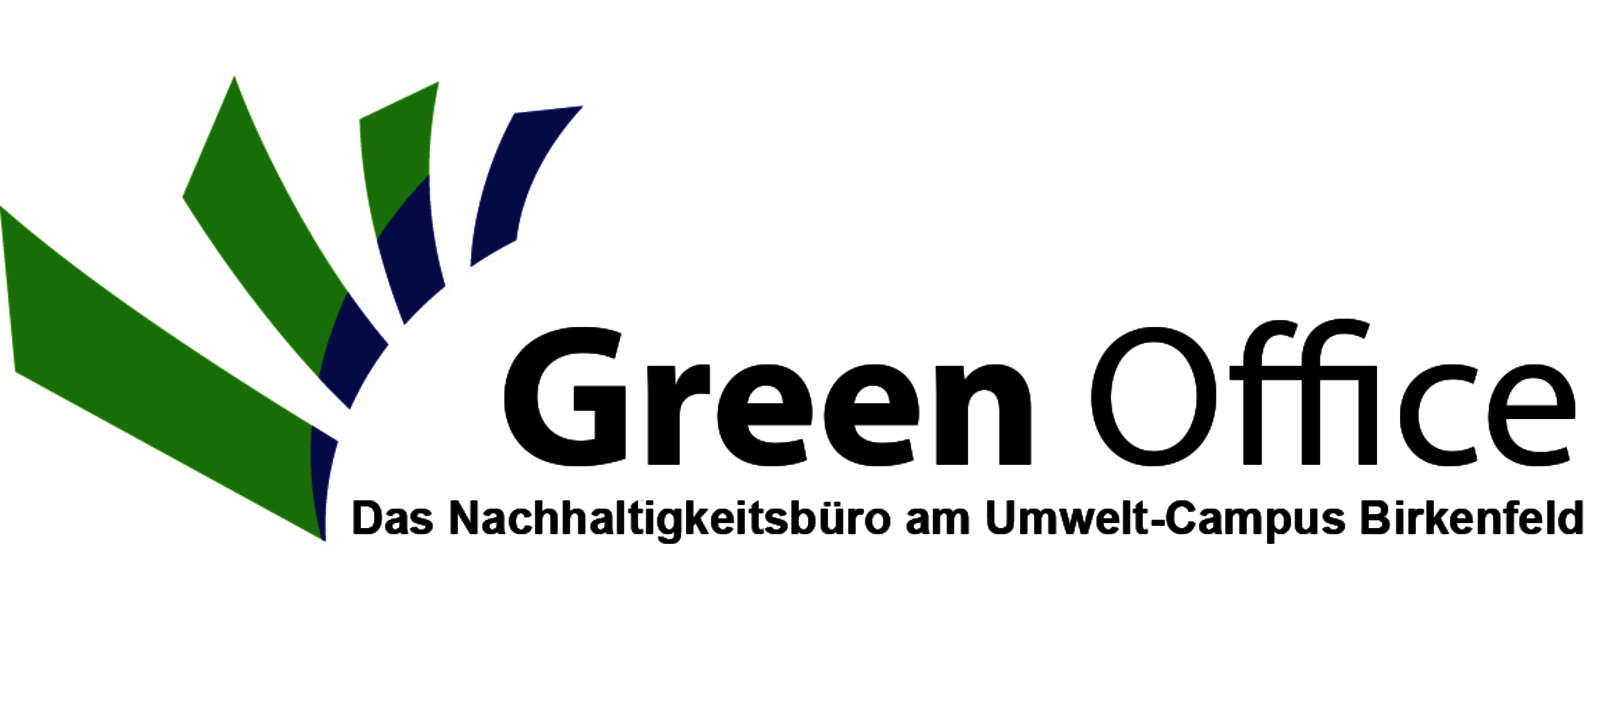 Green Office Umweltcampus Birkenfeld Logo